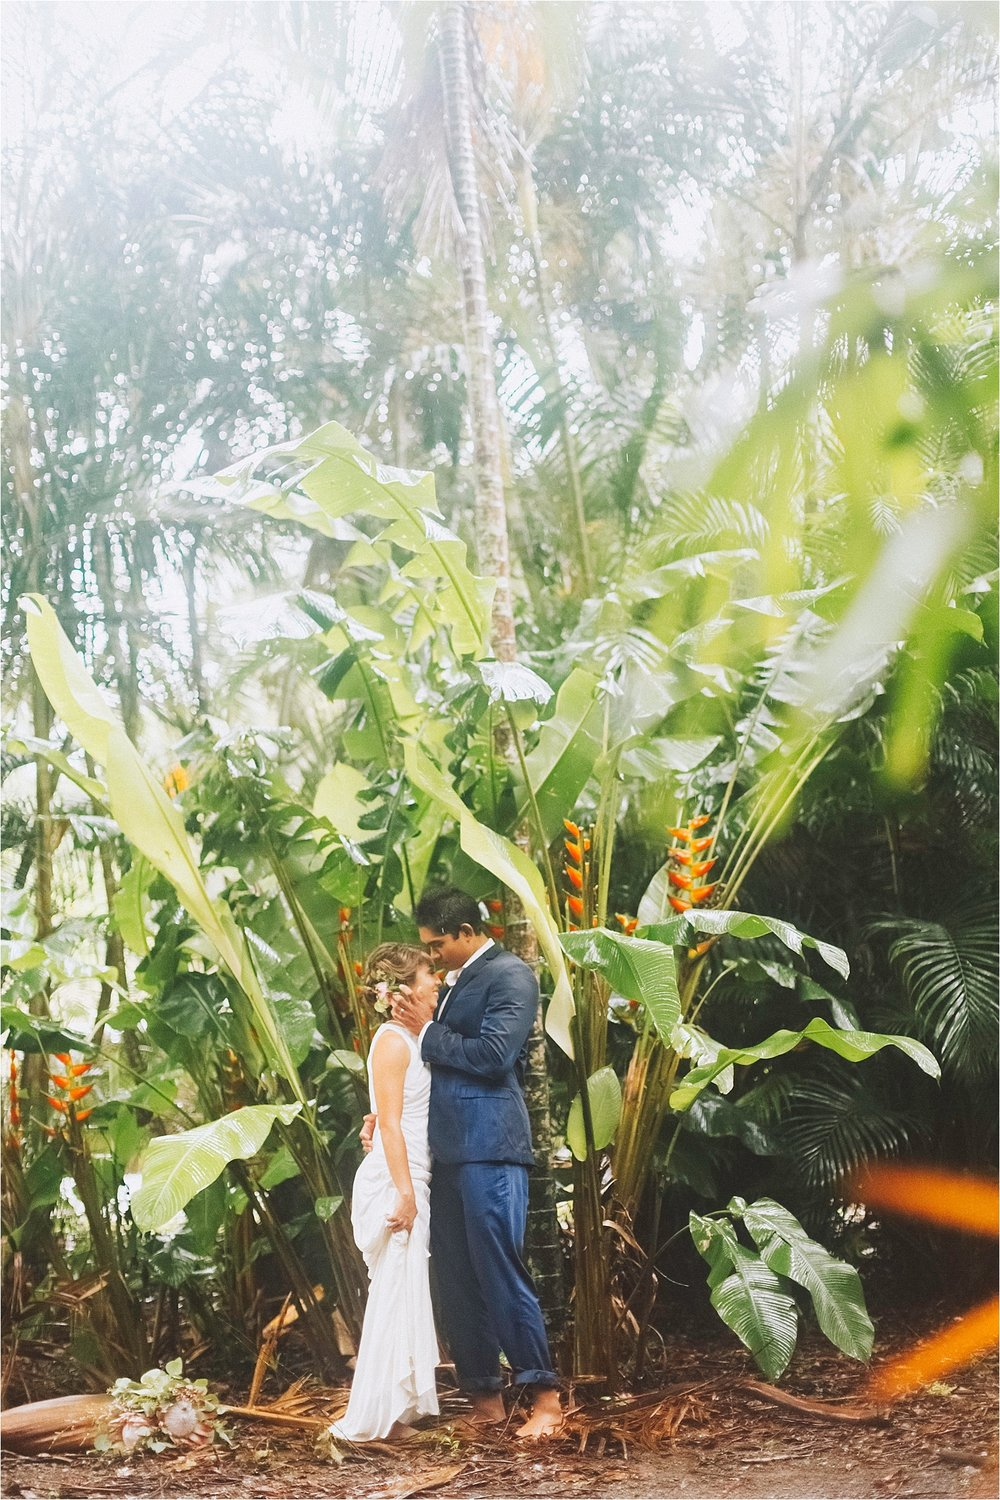 angie-diaz-photography-maui-wedding-photographer_0049.jpg